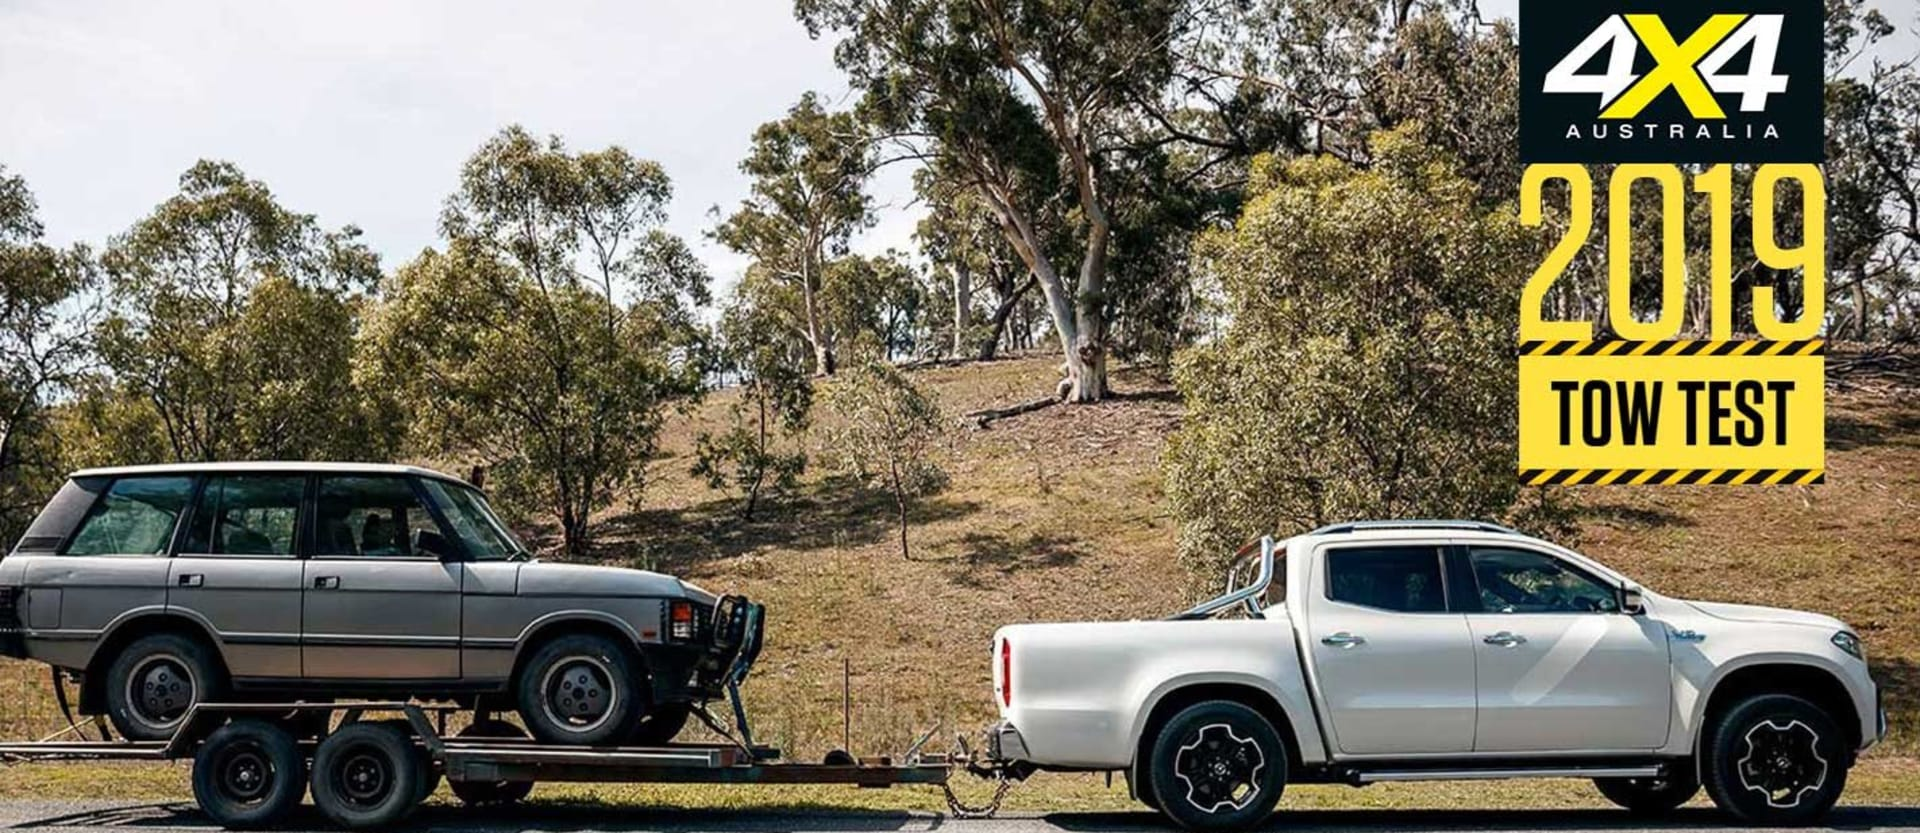 Dual-cab ute load tow test 2019 introduction